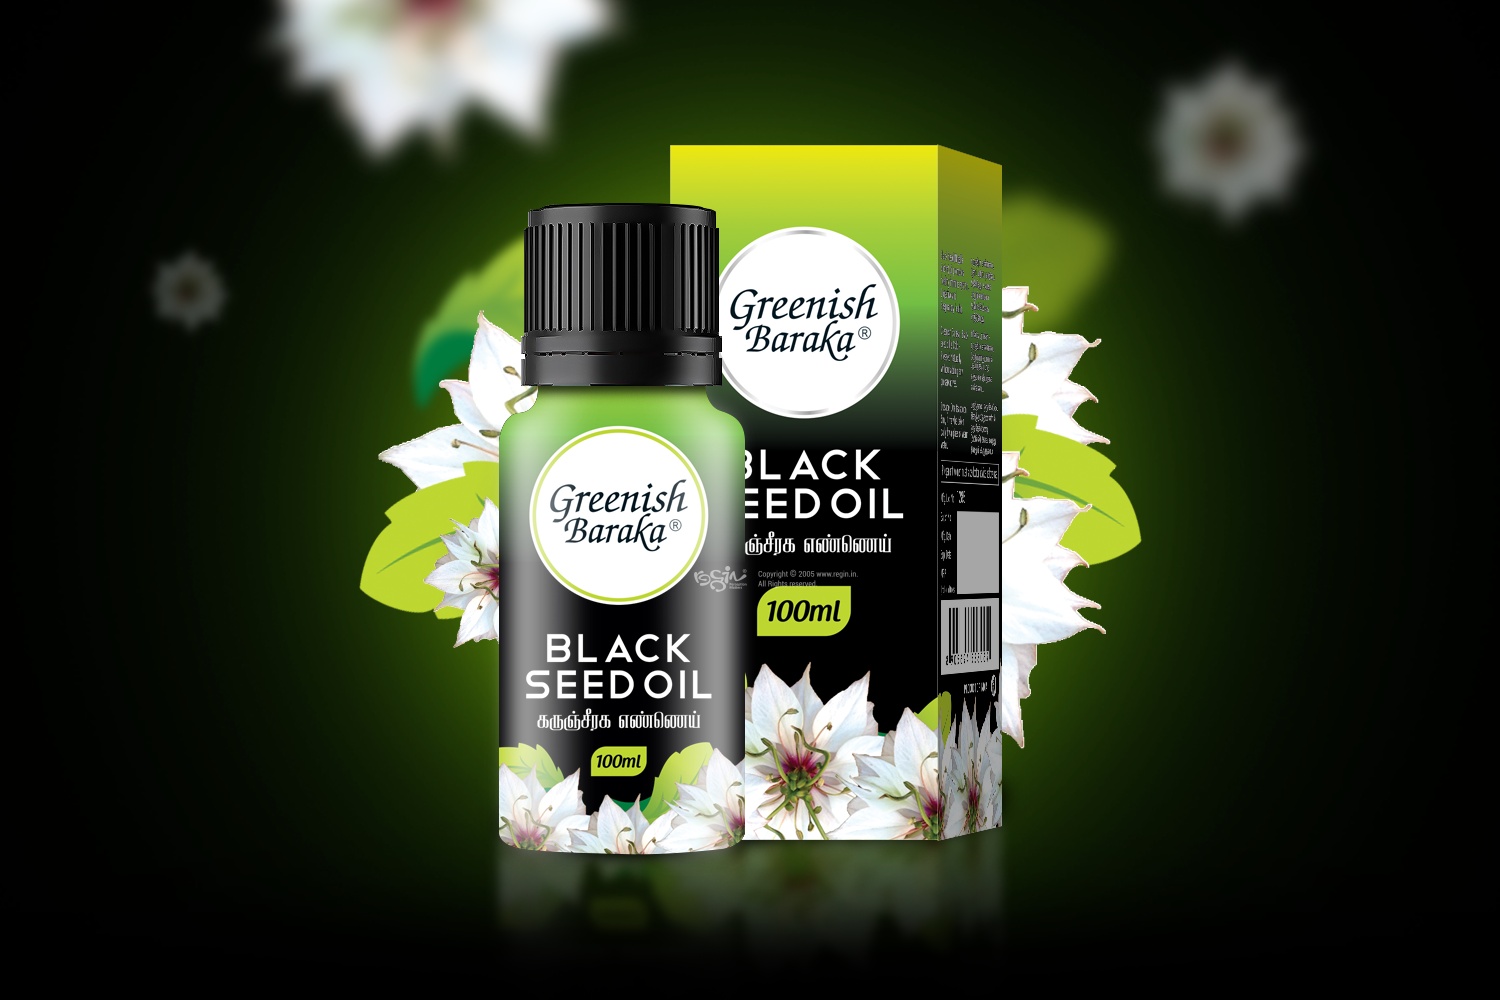 Greenish Baraka Black seed oil